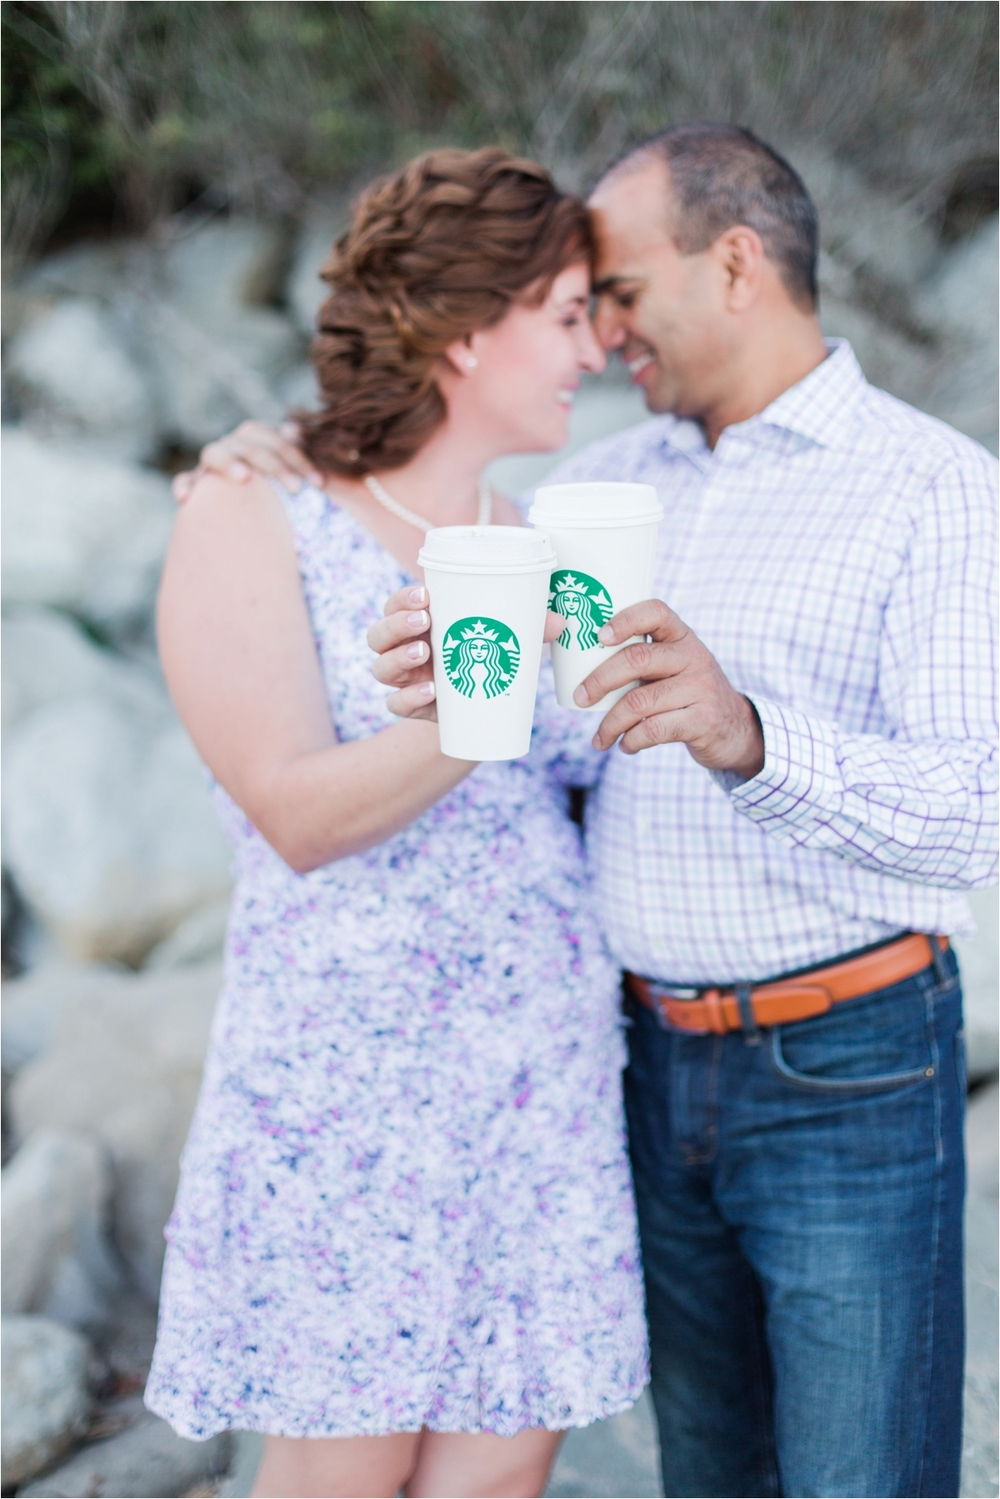 New Brighton beach engagement pictures by Briana Calderon Photography_0282.jpg